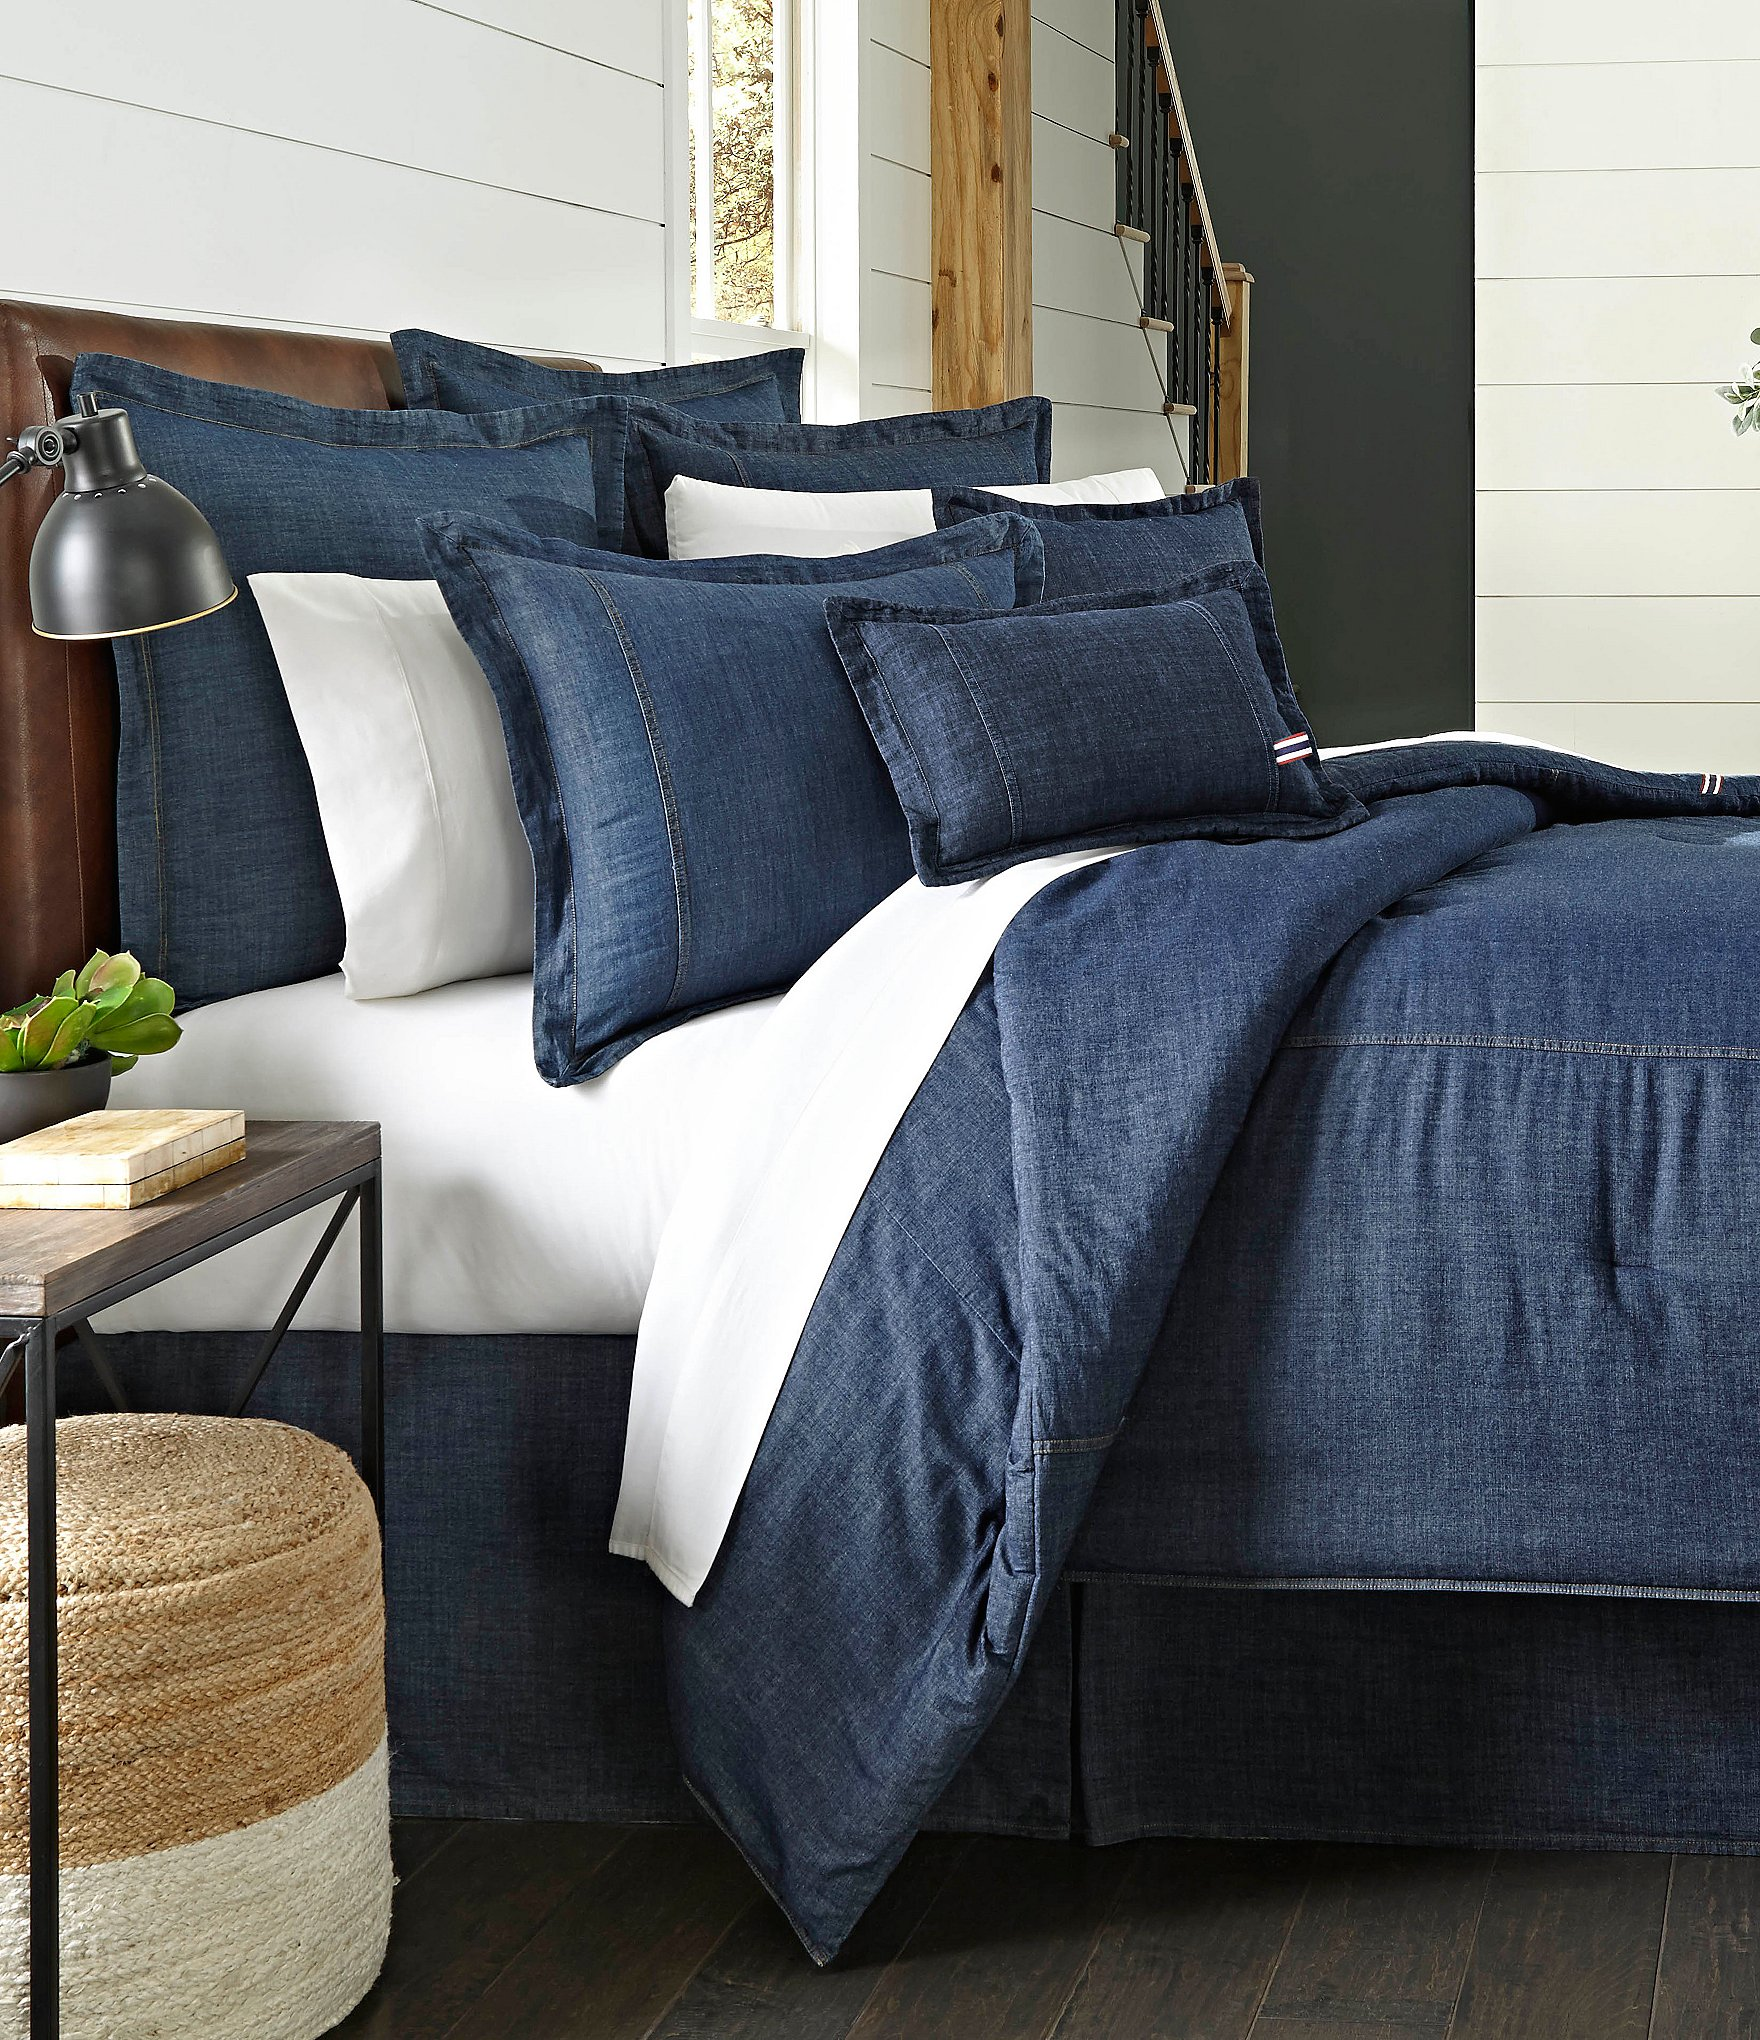 at design bedding southern bed home ideas living dillards collection